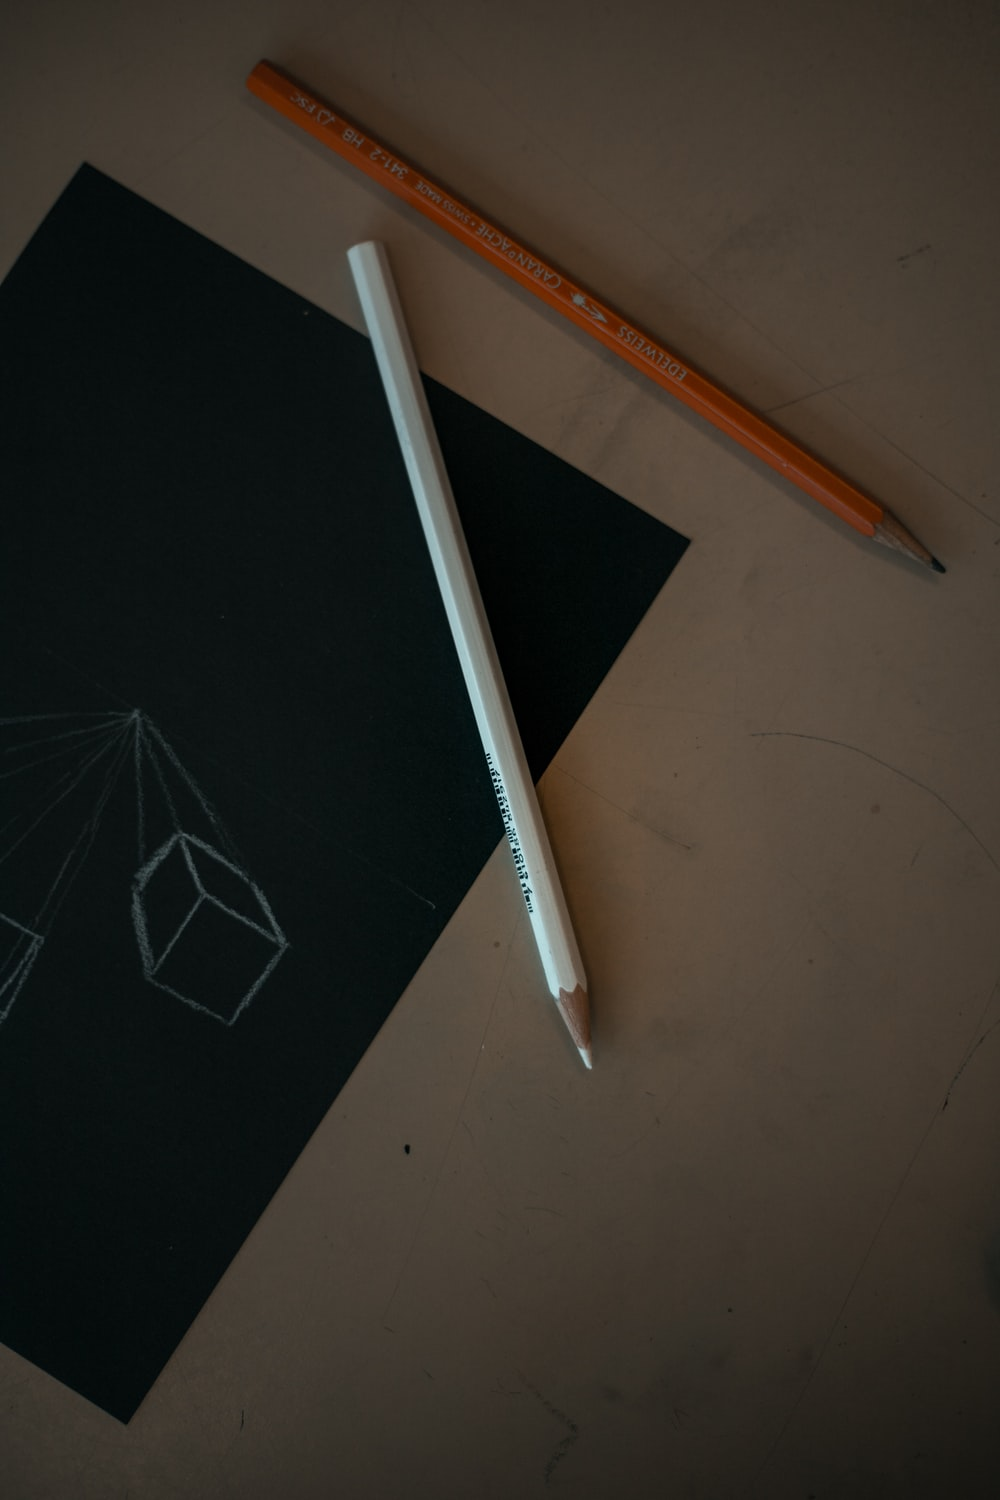 white pencil on black surface